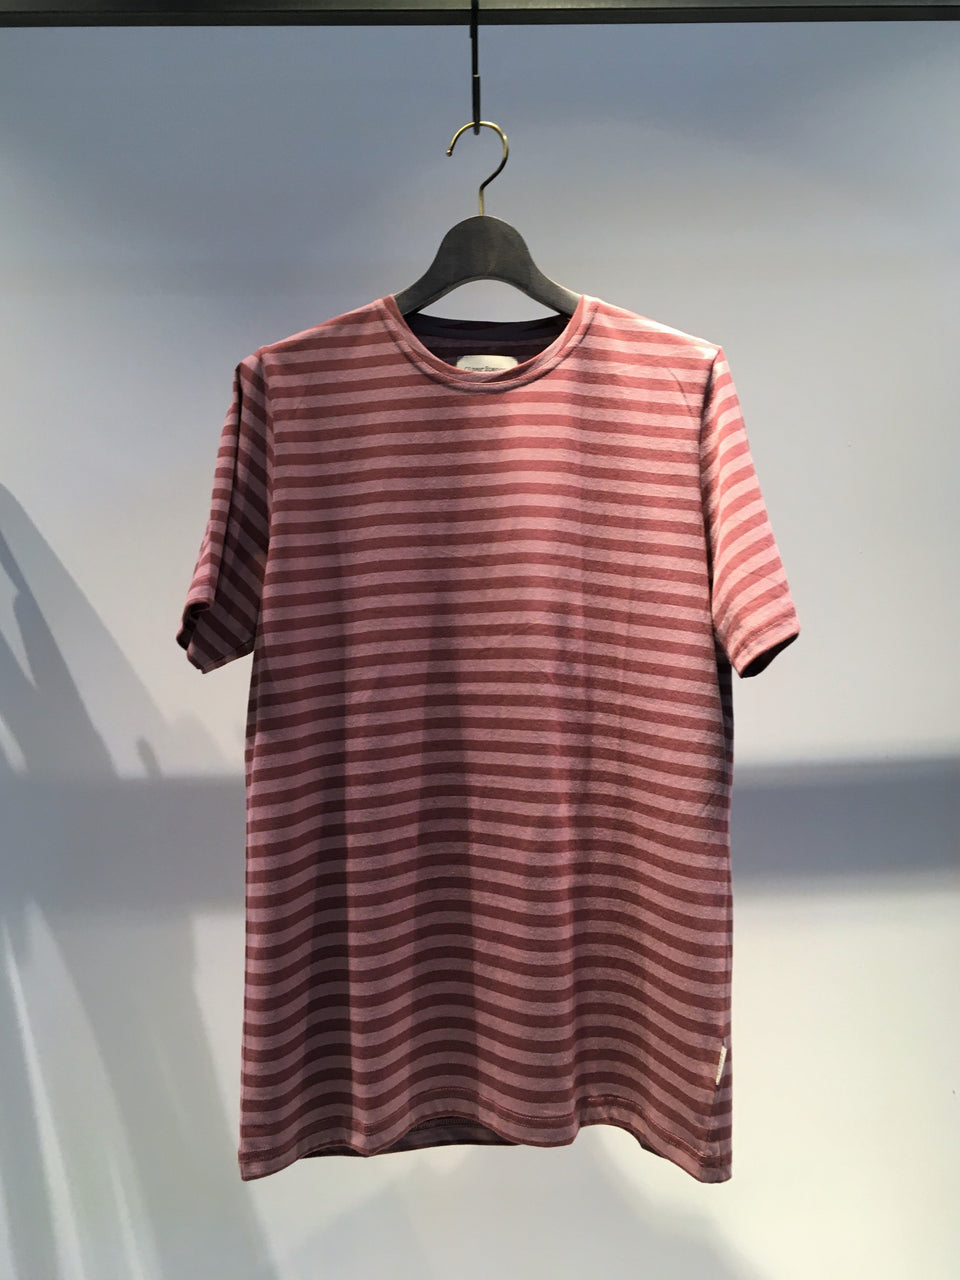 OLIVER SPENCER / CONDUIT TEE / RASPBERRY PINK